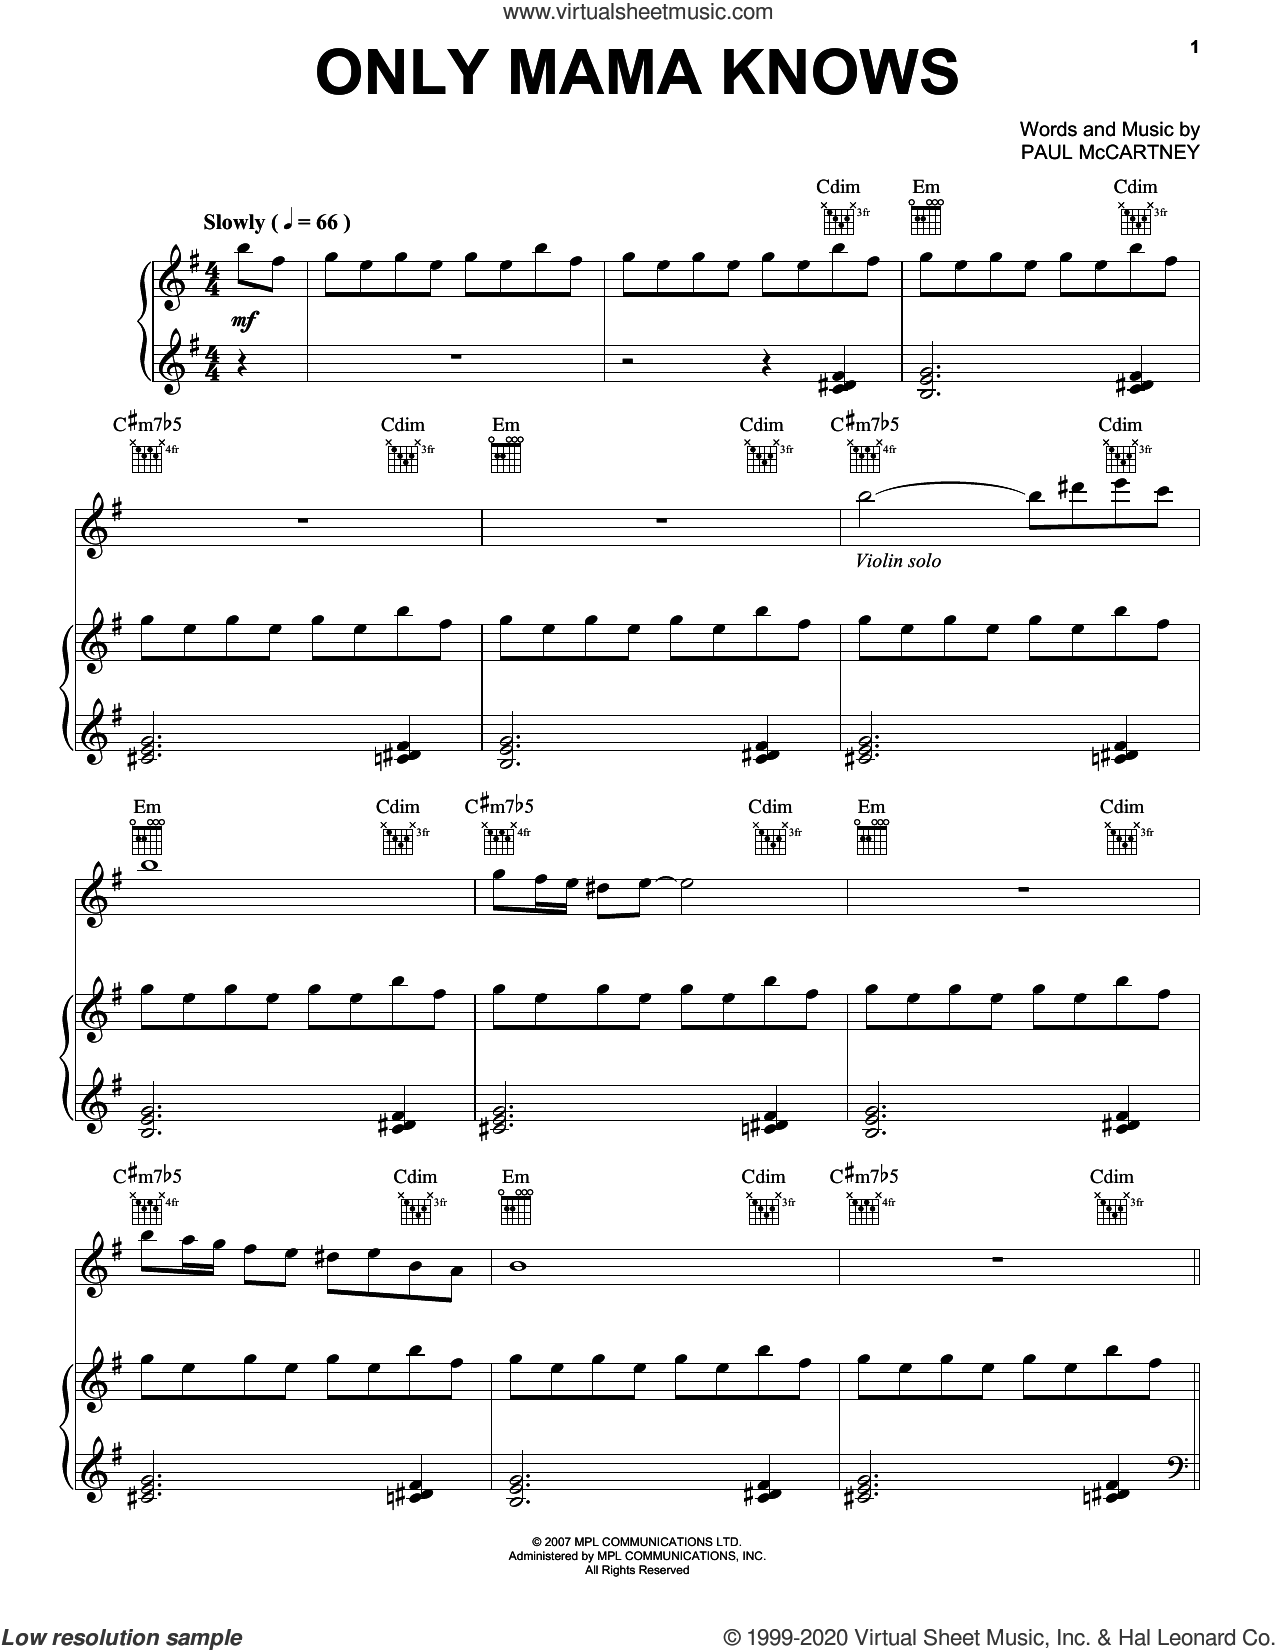 Only Mama Knows sheet music for voice, piano or guitar by Paul McCartney, intermediate skill level